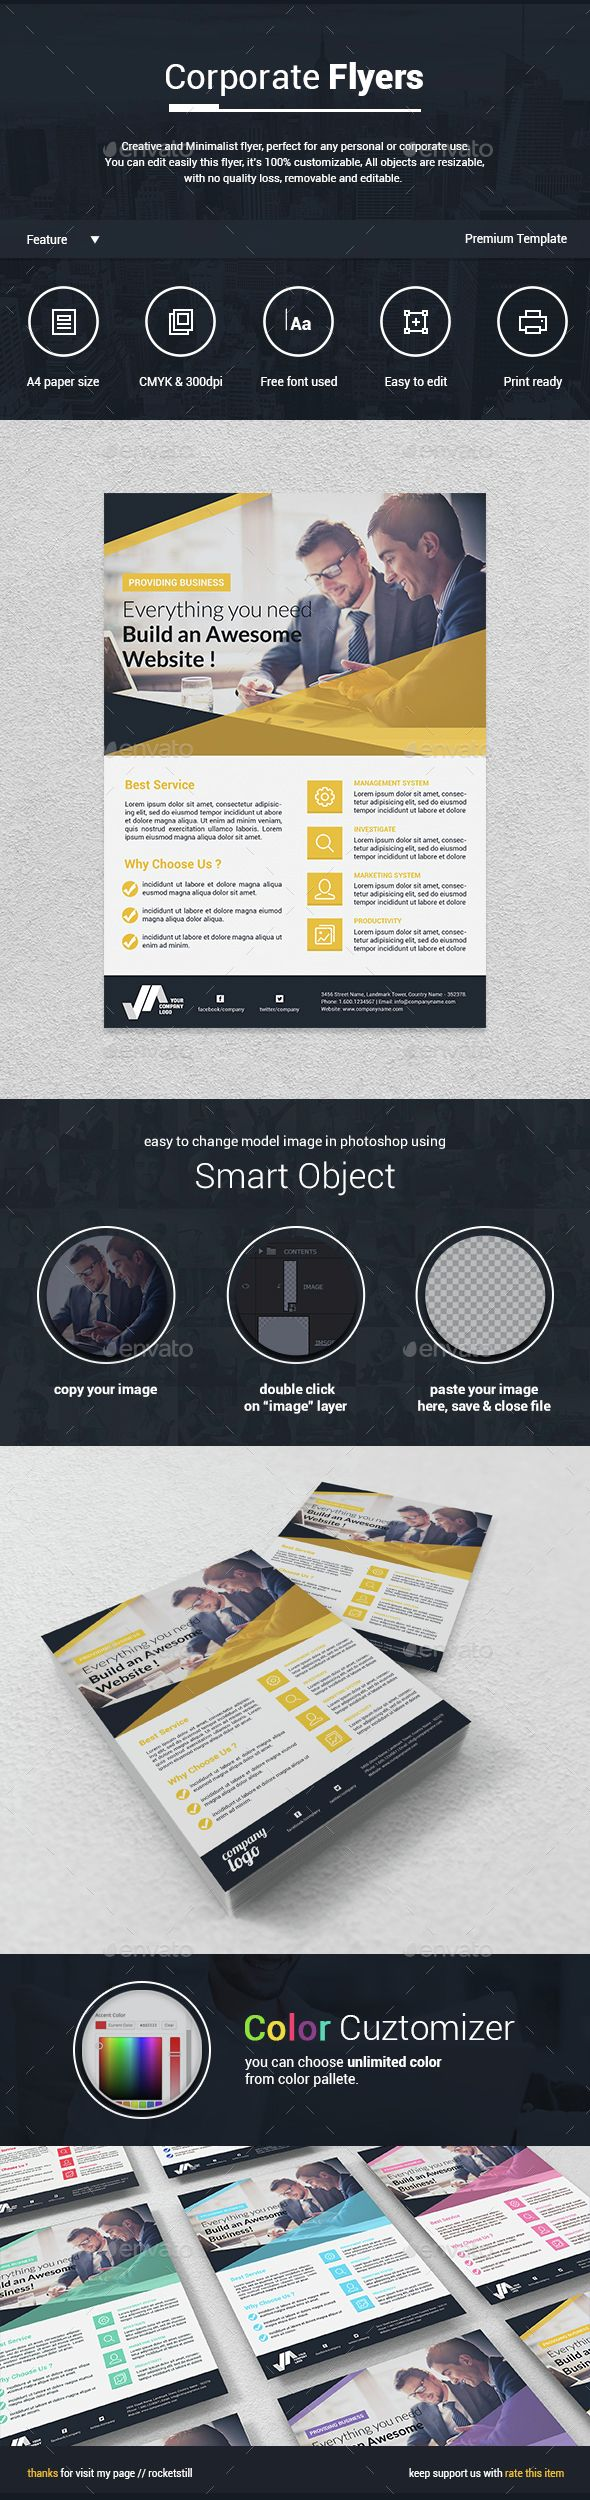 Corporate Flyer Template PSD. Download here: http://graphicriver.net/item/corporate-flyer-/14938123?ref=ksioks